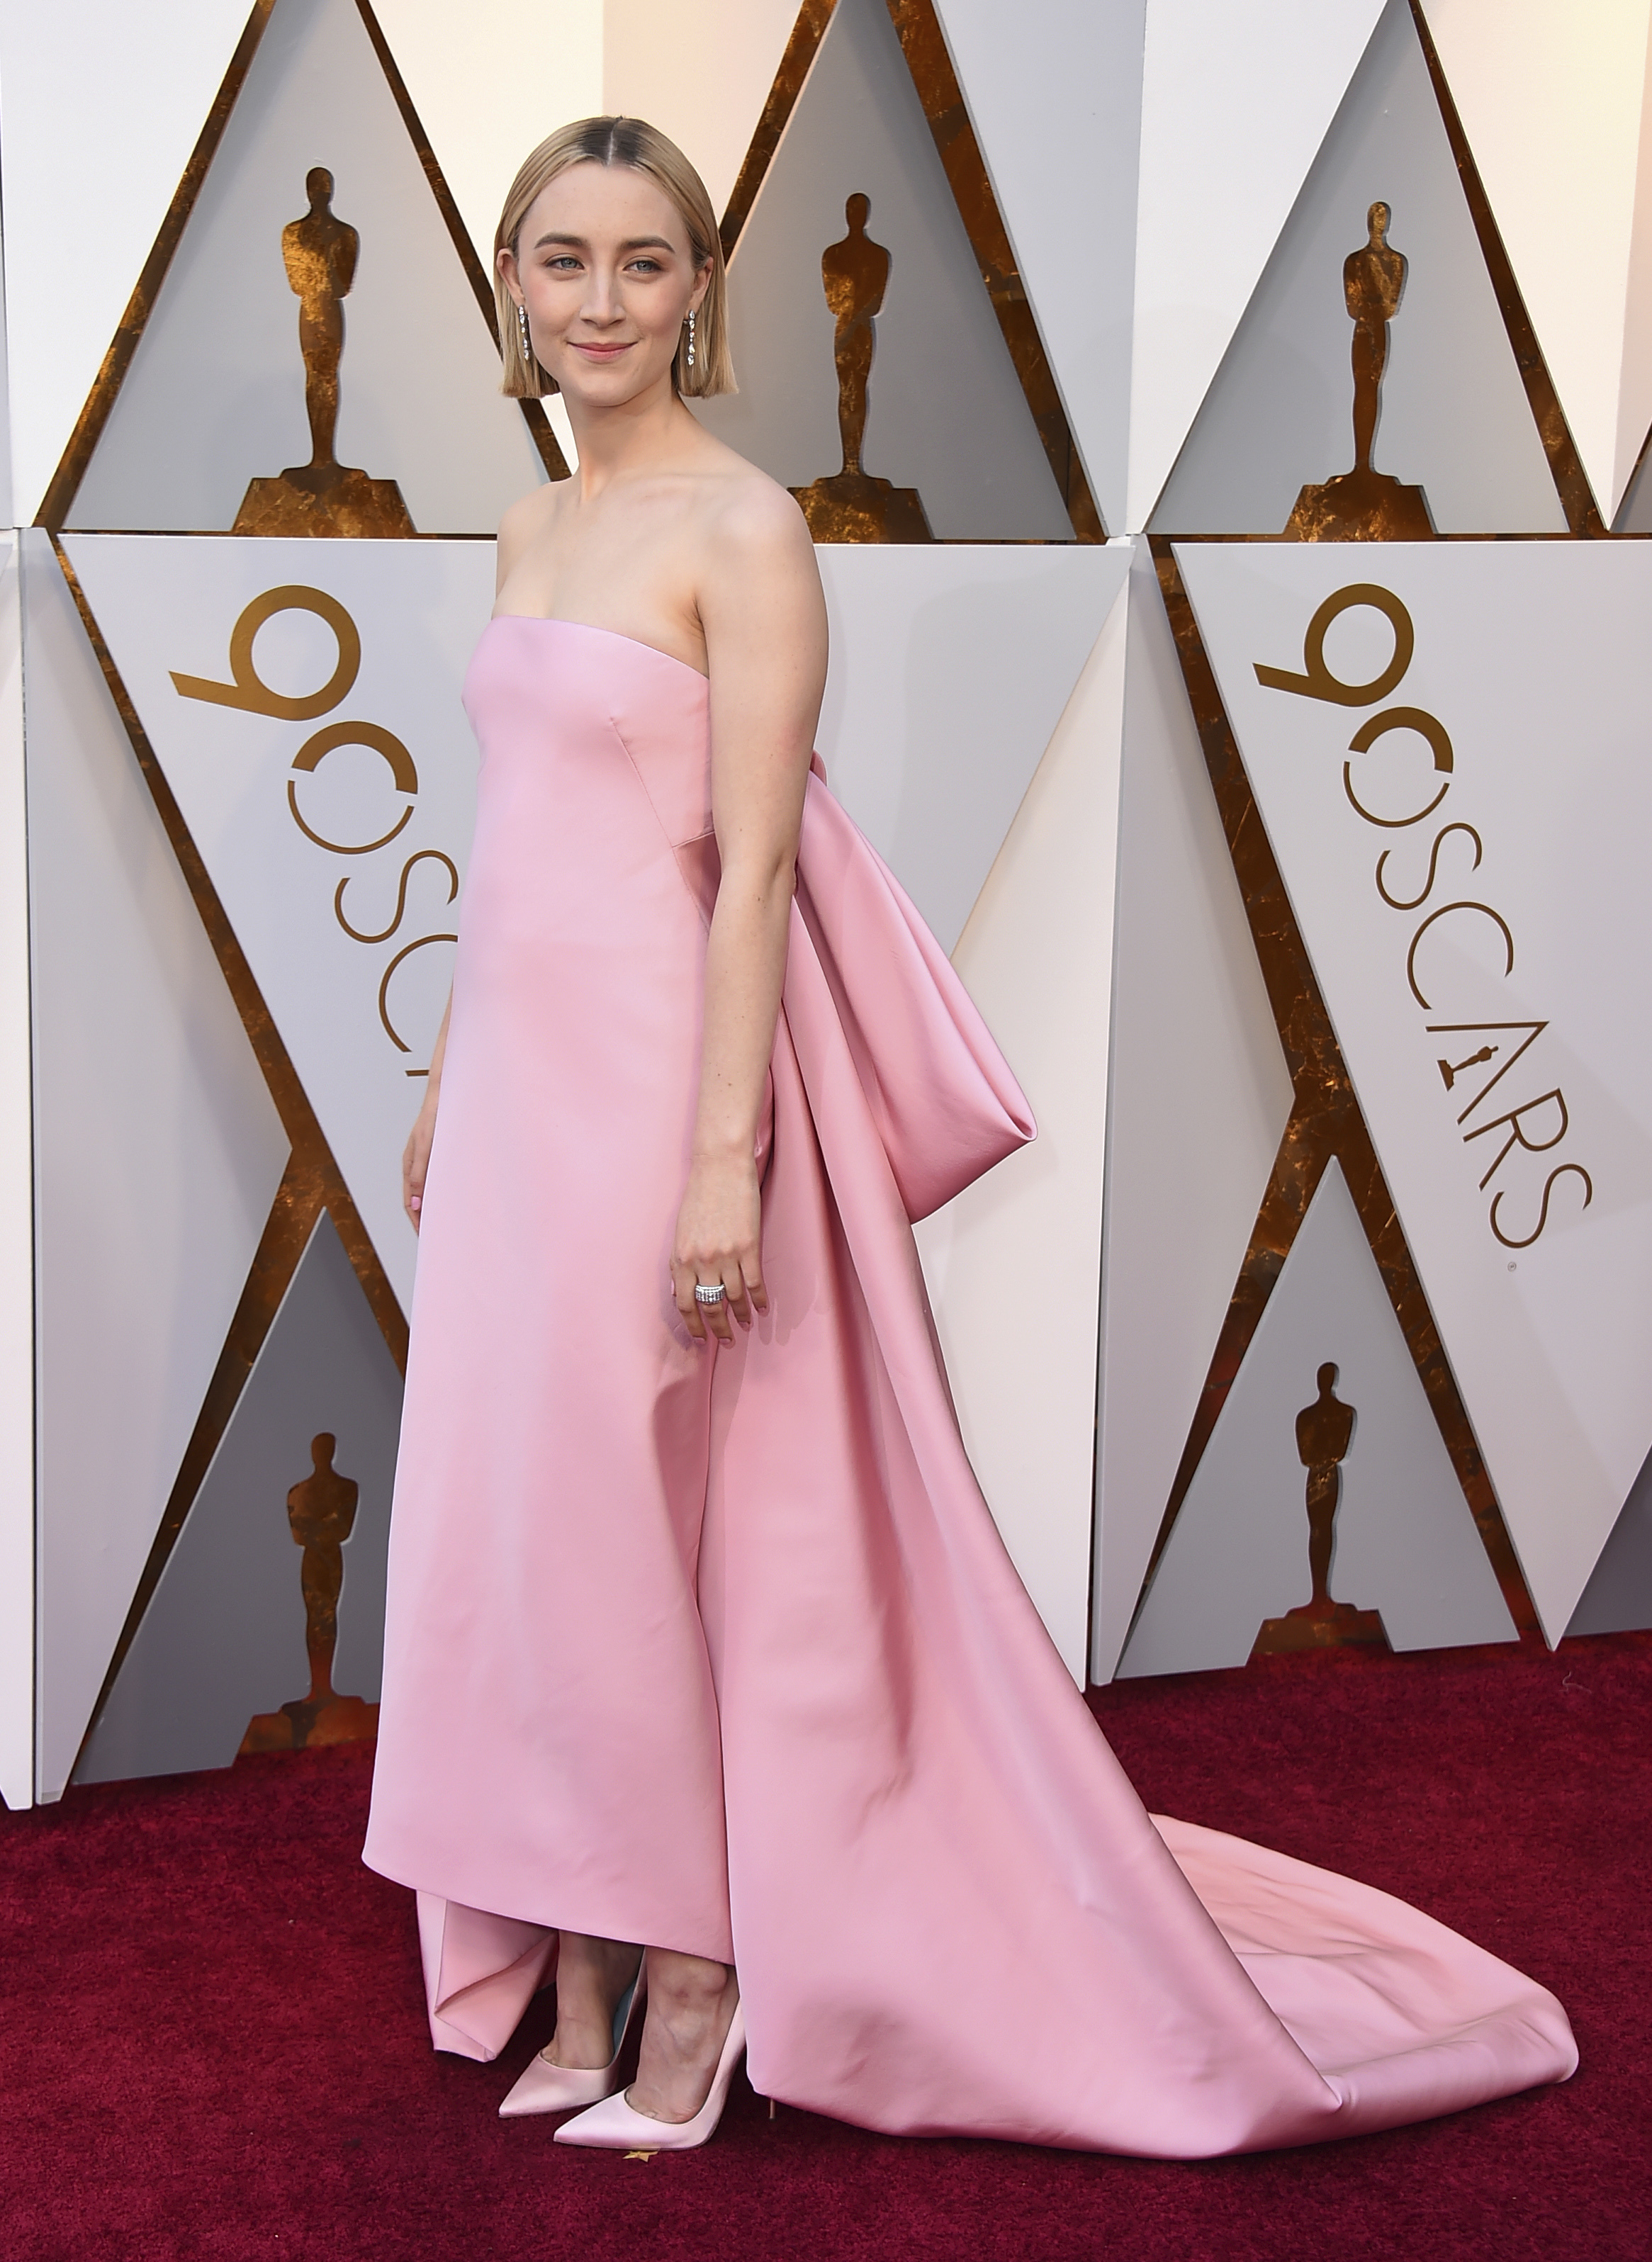 <div class='meta'><div class='origin-logo' data-origin='none'></div><span class='caption-text' data-credit='Jordan Strauss/Invision/AP'>Best Actress nominee Saoirse Ronan of ''Lady Bird'' arrives at the Oscars on Sunday, March 4, 2018, at the Dolby Theatre in Los Angeles.</span></div>